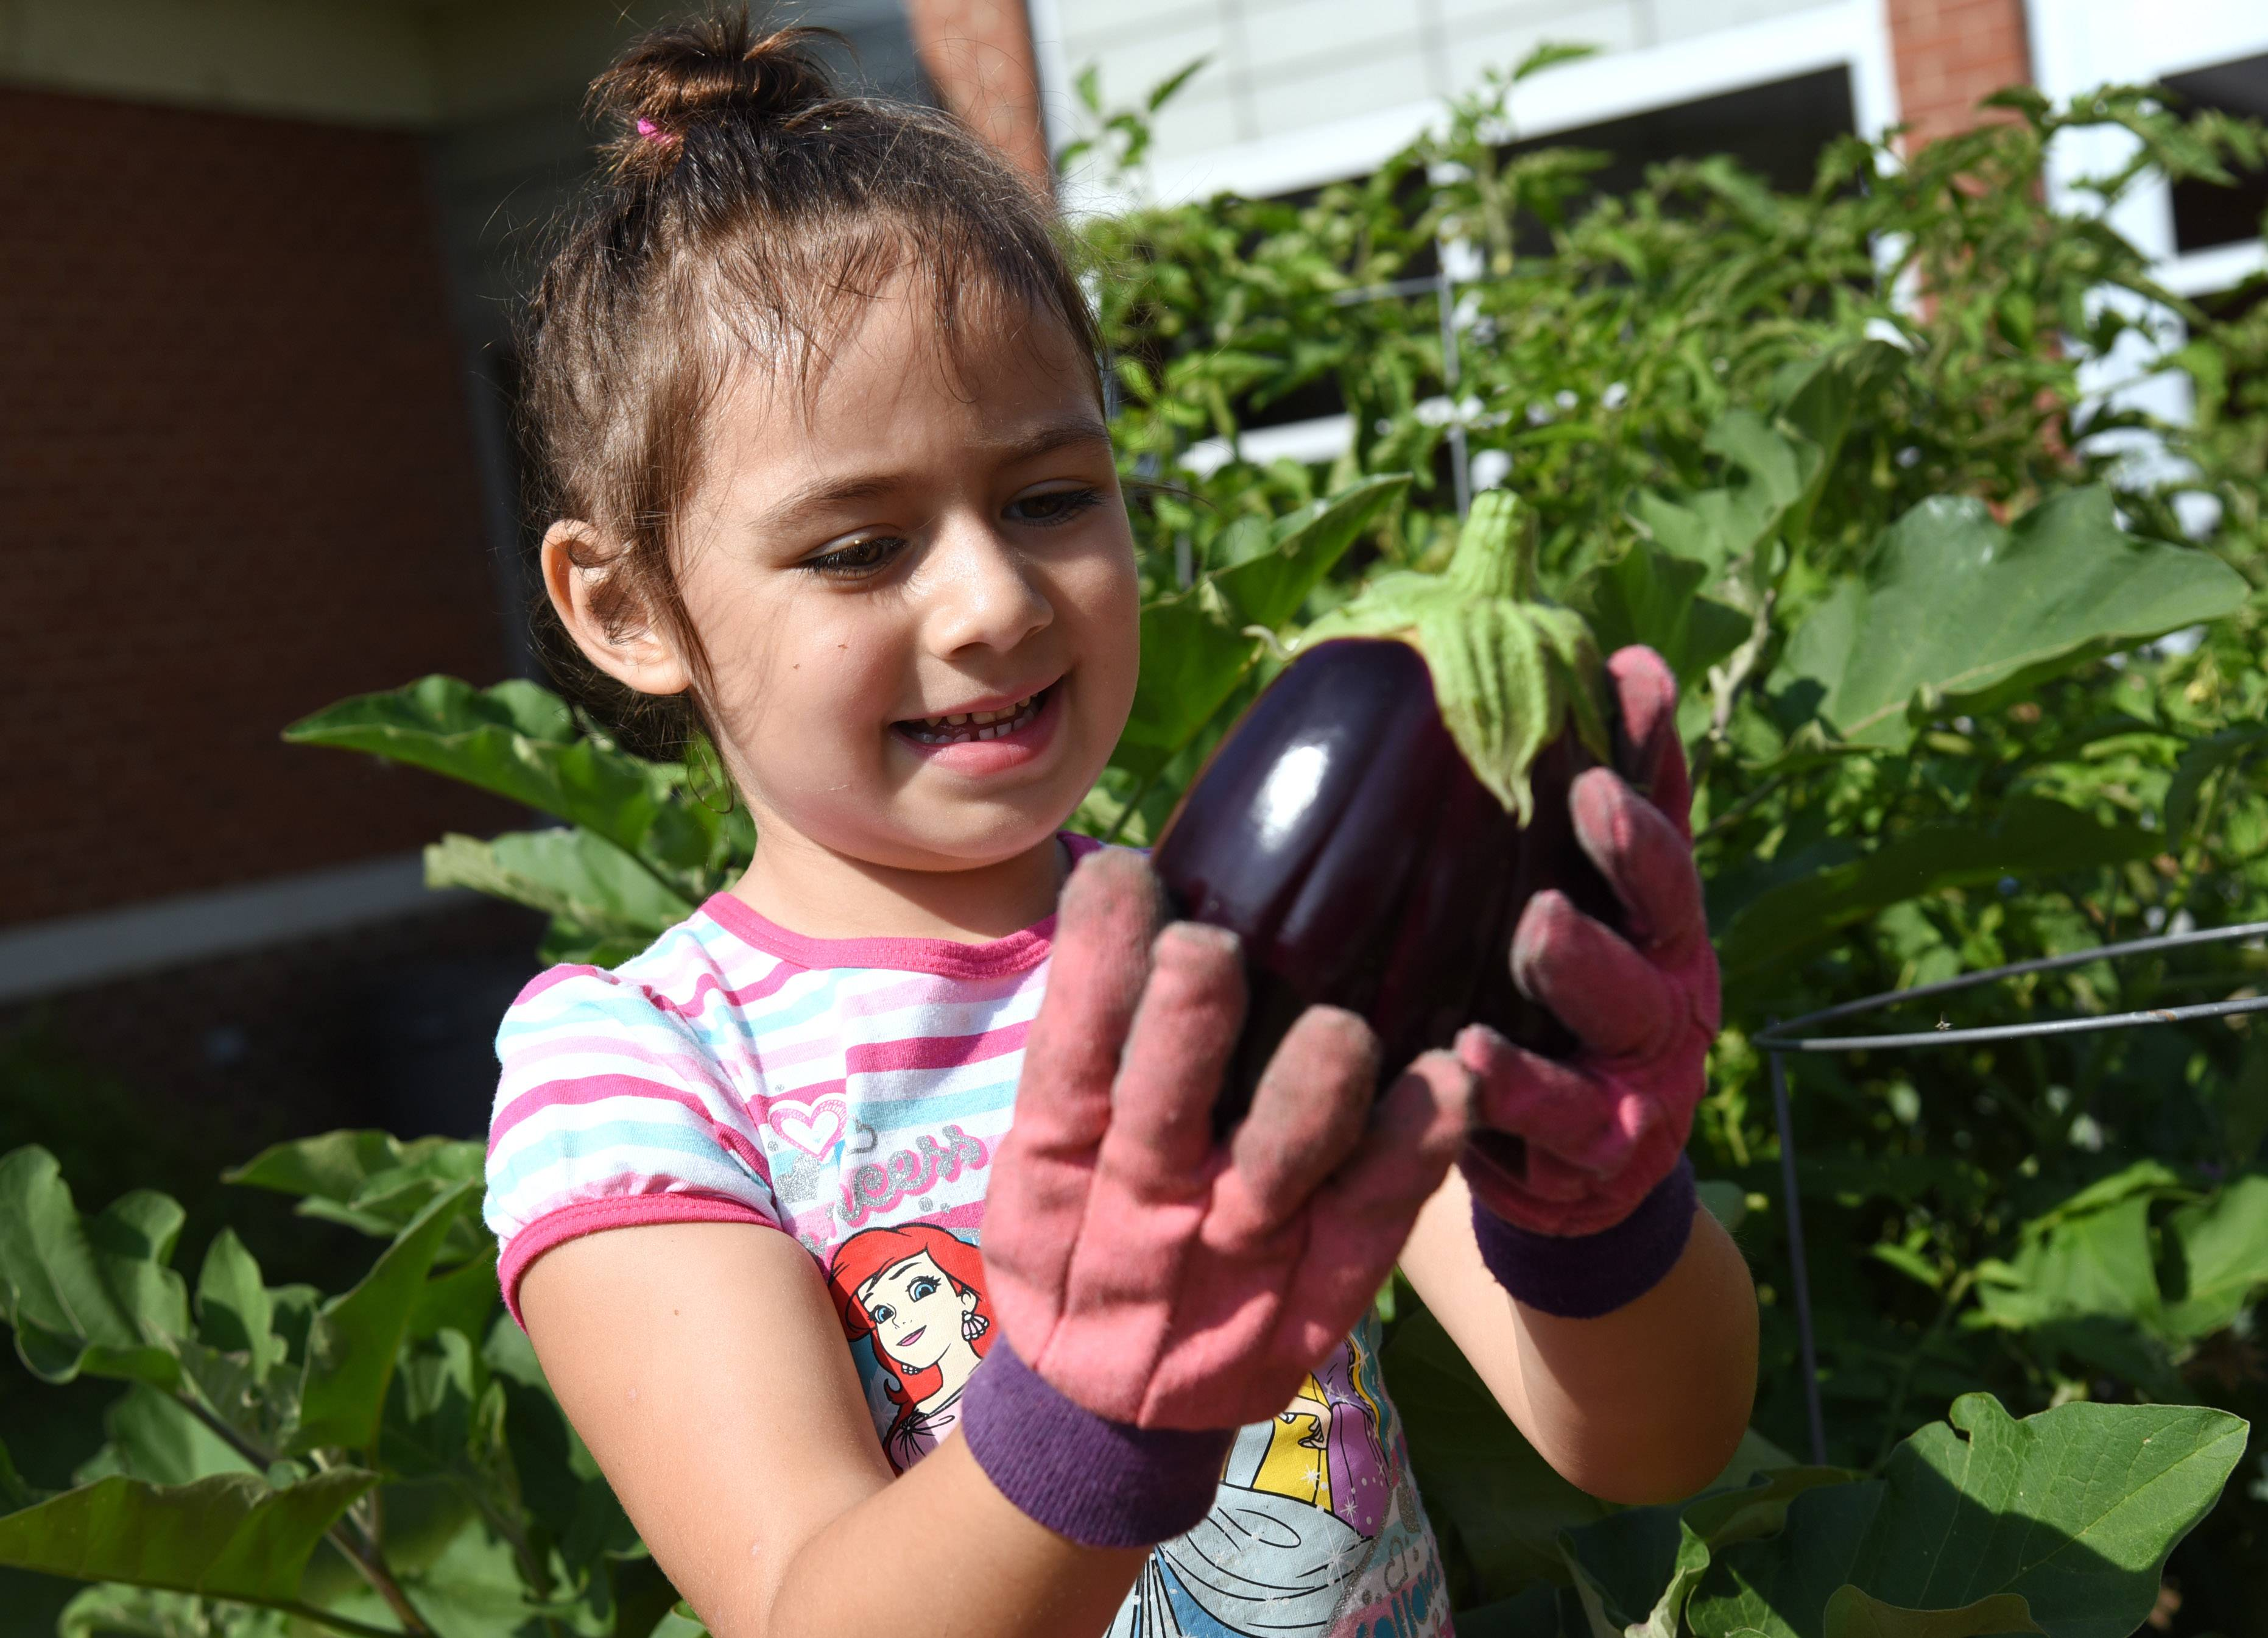 Fremont Elementary School kindergarten student Madisun Flores checks out an eggplant she helped harvest Tuesday at the Mundelein school.